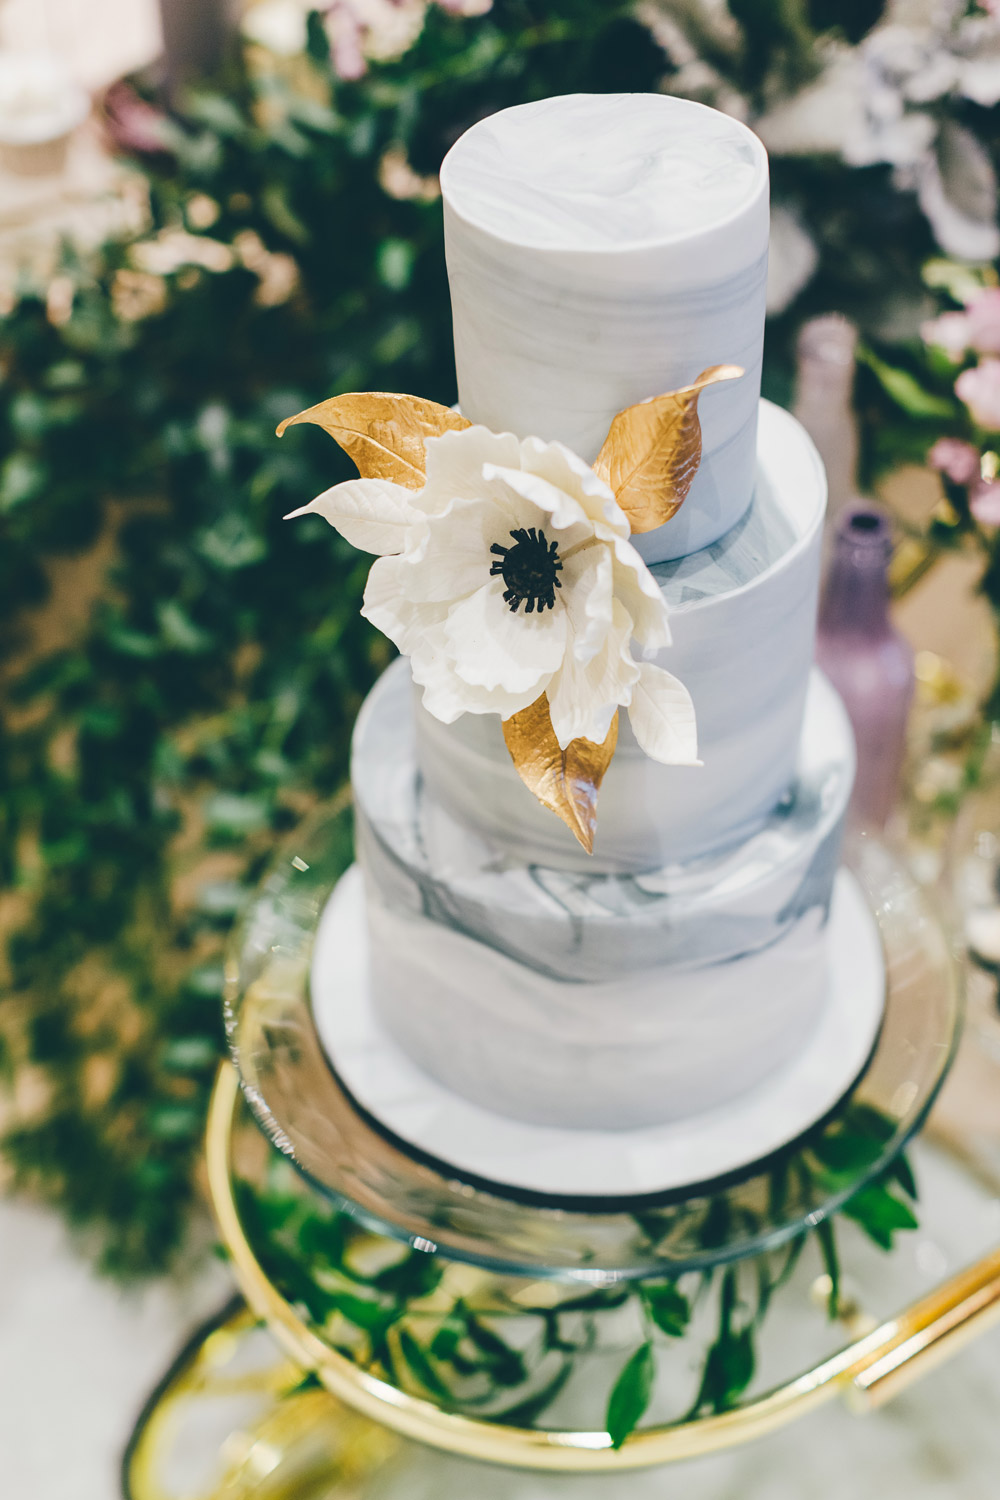 Marble wedding cake. Photo by MJK Photography. Wedding at Le Meridien Putrajaya. www.theweddingnotebook.com